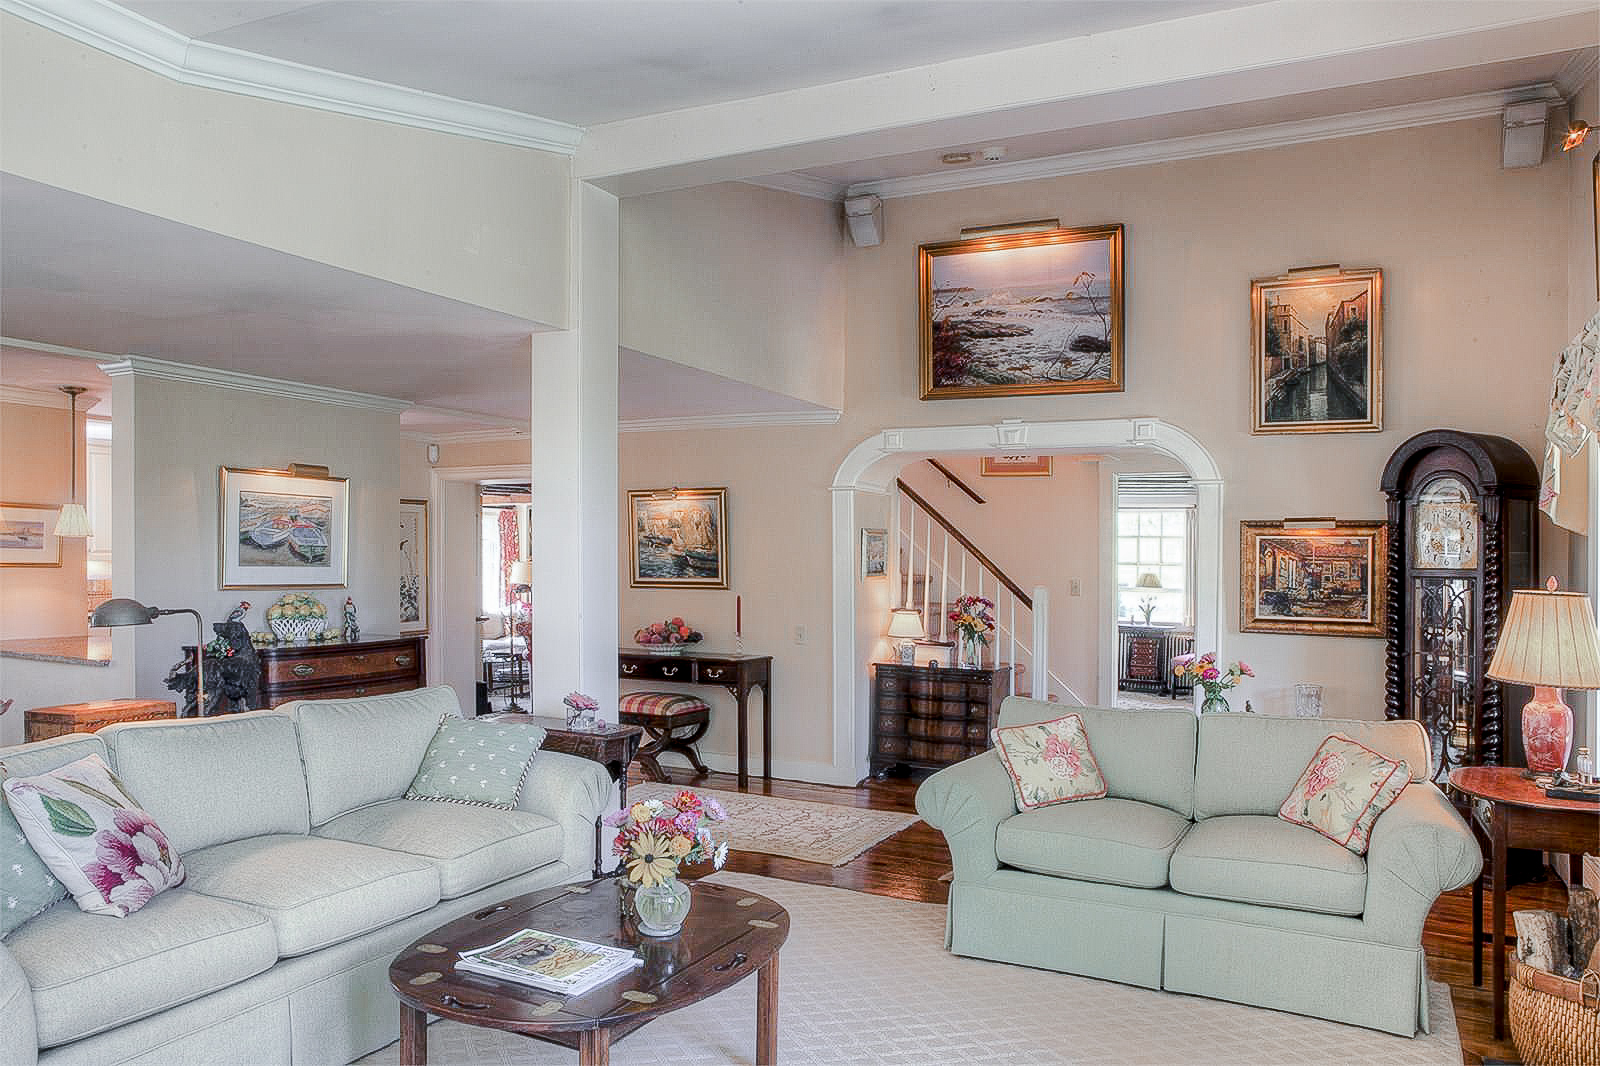 Luxe_and_Livable_Interior_Design_Blog_by_Maloney_Interiors_Portsmouth_Rhode_Island_Kimberly_Fleming_Real_Estate_11.jpg